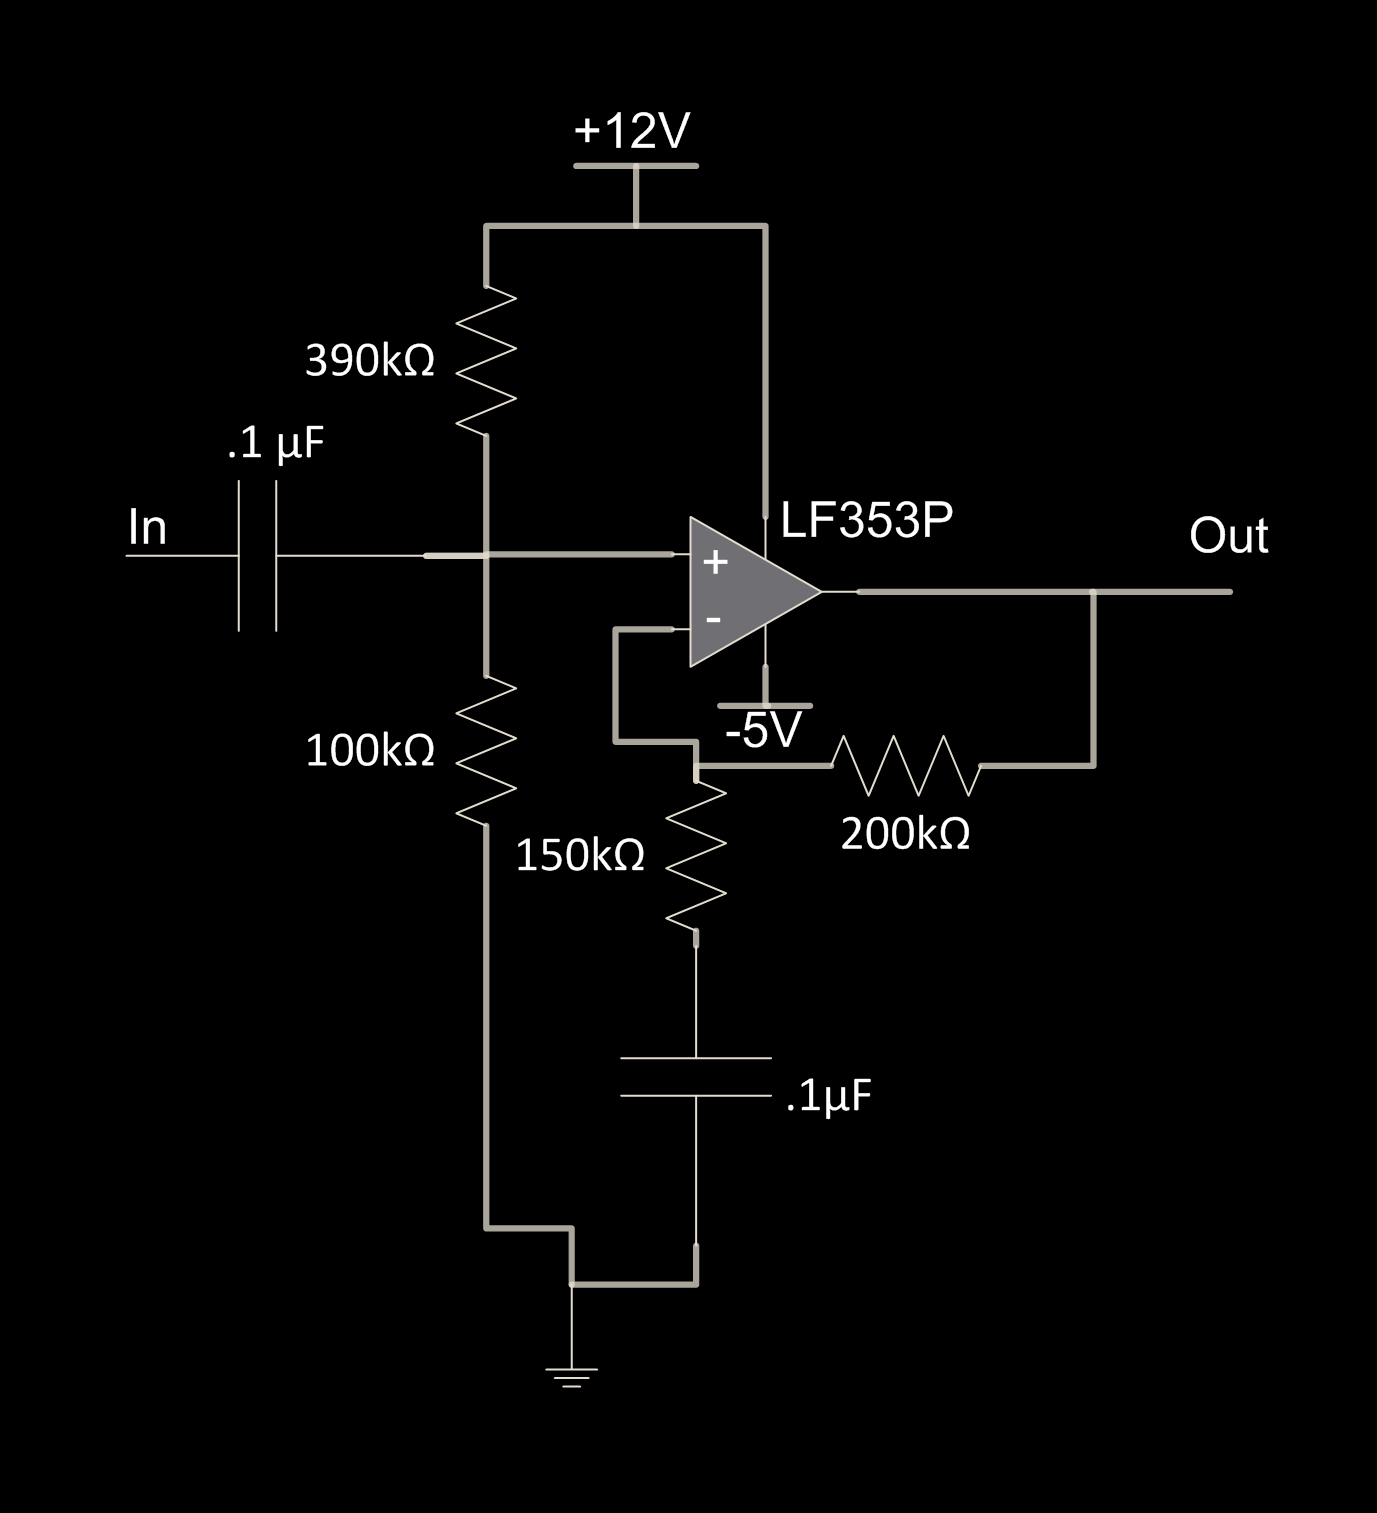 Ece 4760 Final Project Phased Array Speaker System Mfbp Circuit Applet For Narrow Band Pass Butterworth Filter The First Stage Is A High And Re Biasing Implemented By Capacitor Resistor Divider Corner Frequency Of This